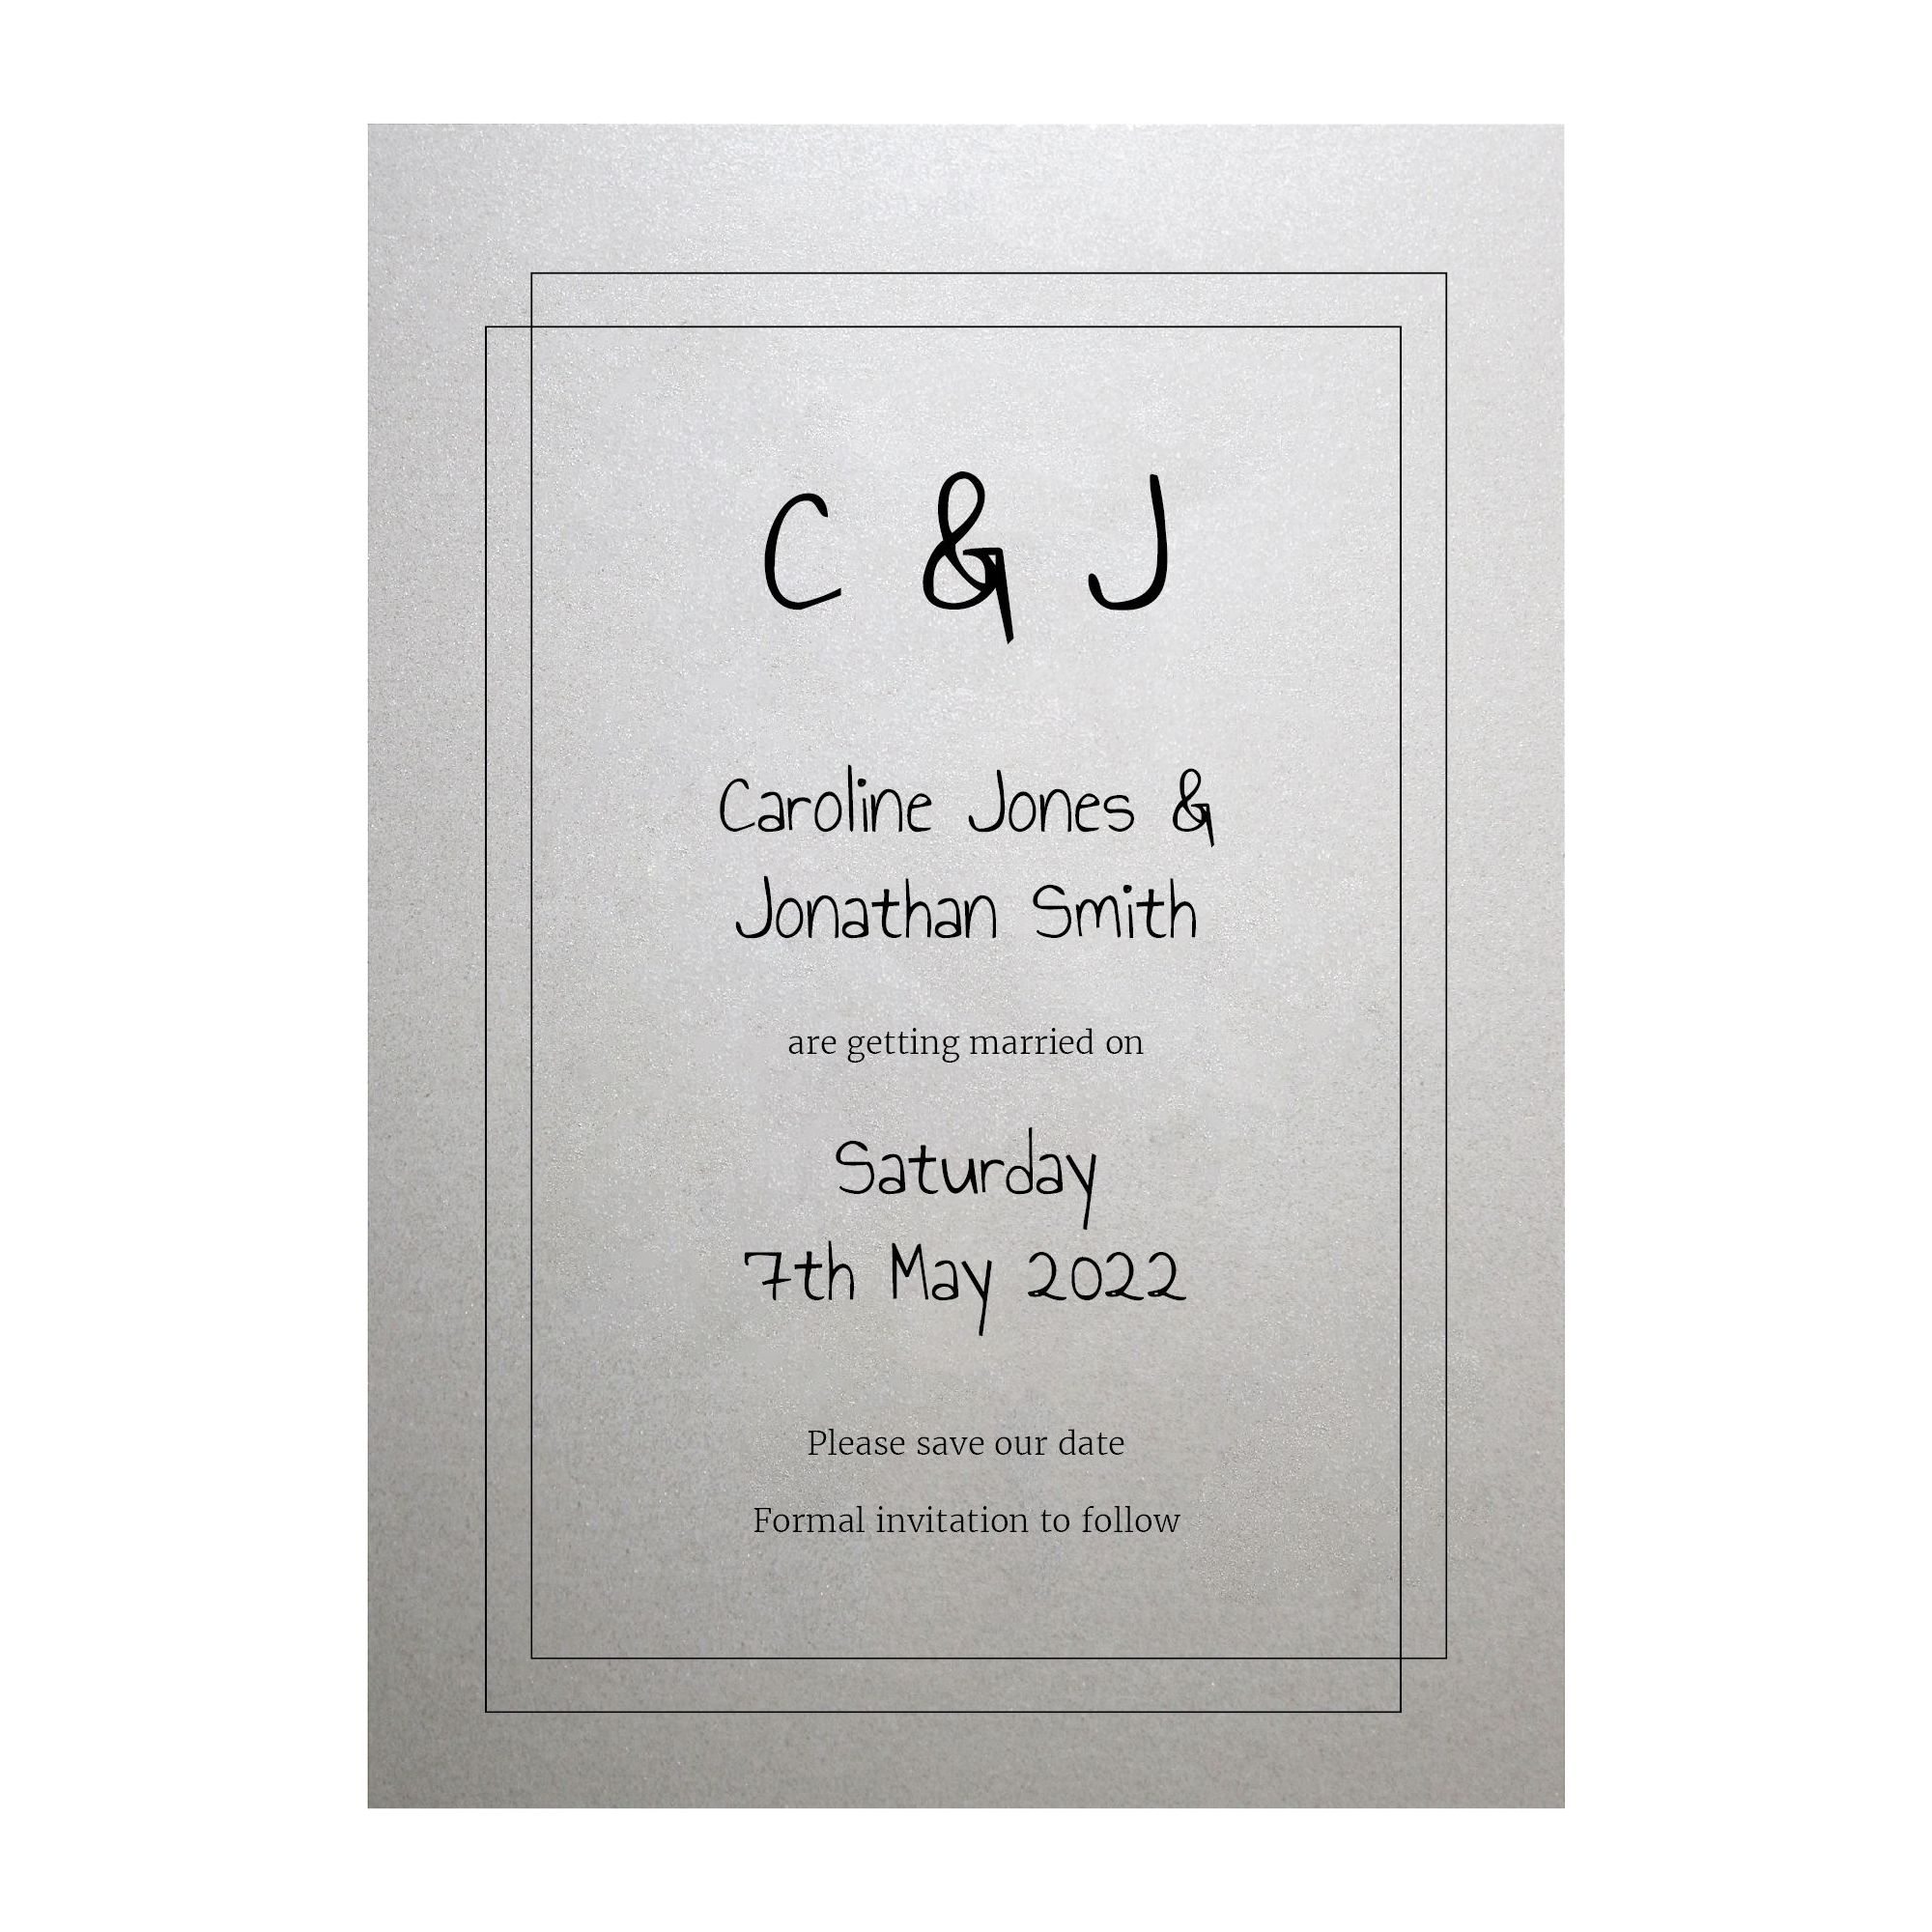 Shimmer Arctic White Classic Bordered Save the Date Cards